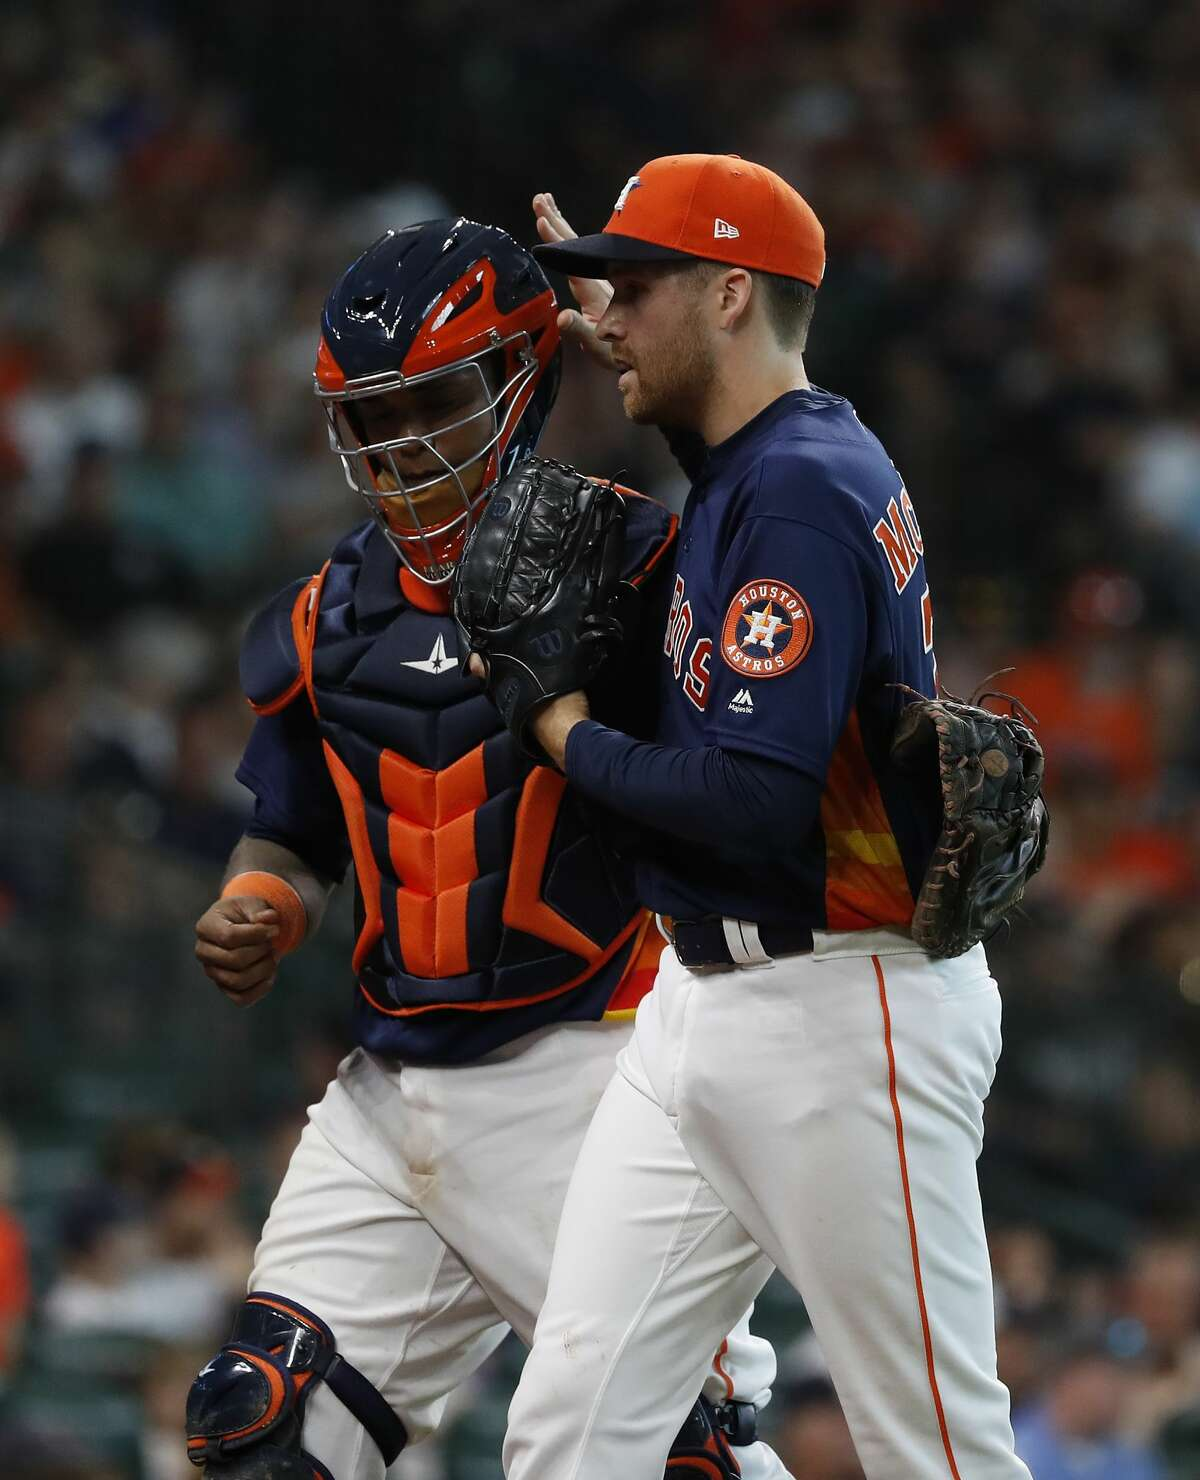 Houston Astros relief pitcher Collin McHugh (31) celebrates with catcher Martin Maldonado (15) after the seventh inning of an MLB game at Minute Maid Park, Sunday, July 29, 2018, in Houston.